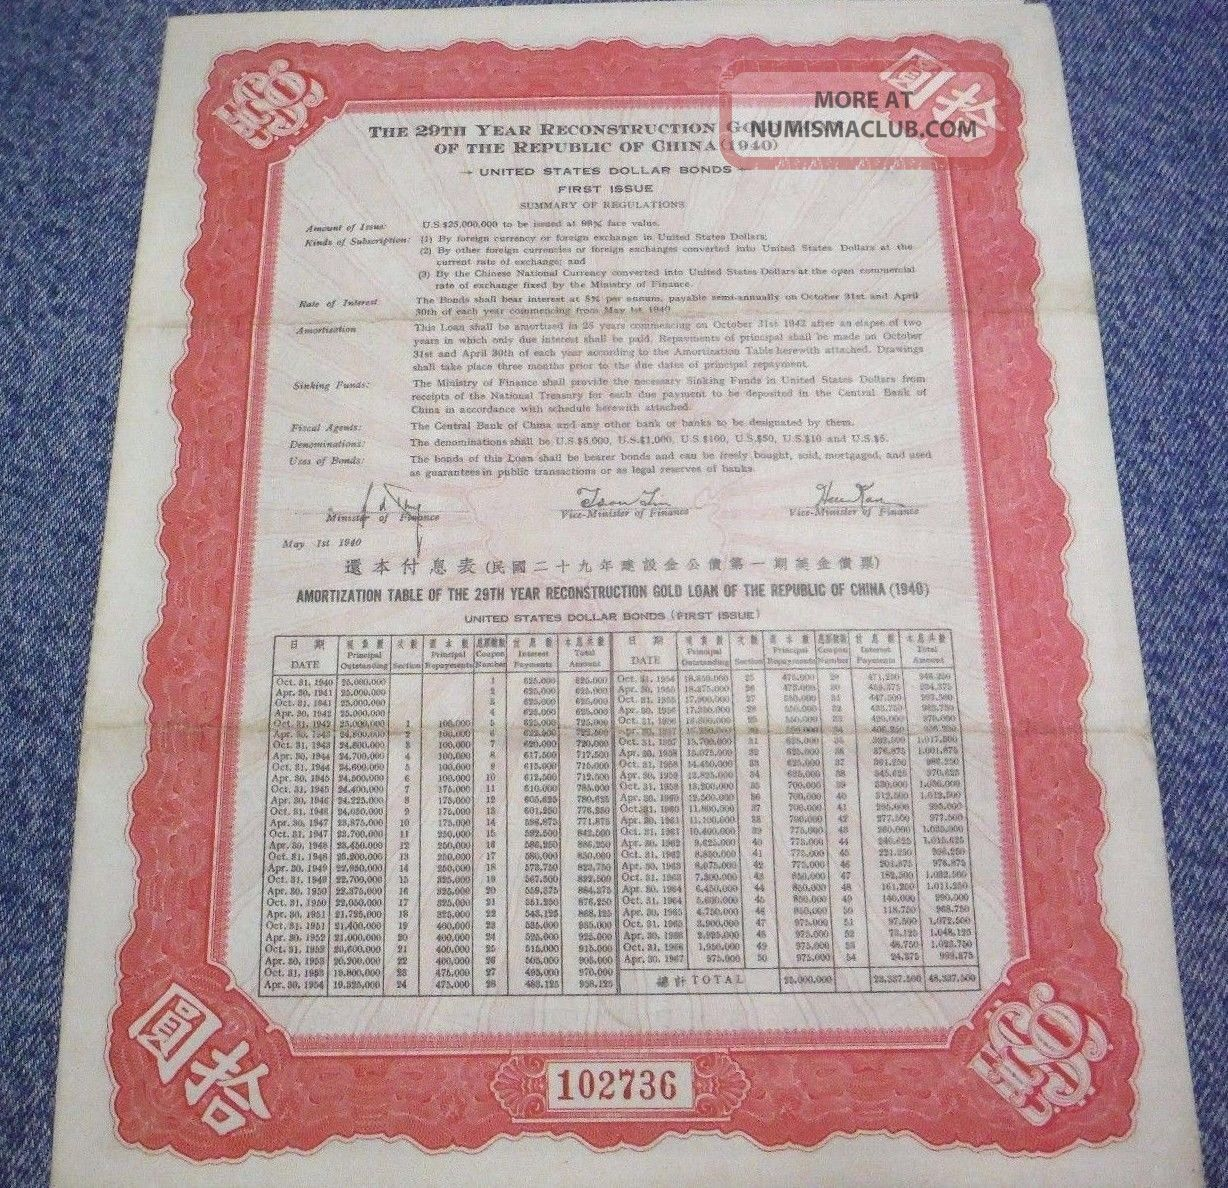 China 29th Year 1940 Reconstruction Gold Loan With Raised Seal Stocks & Bonds, Scripophily photo